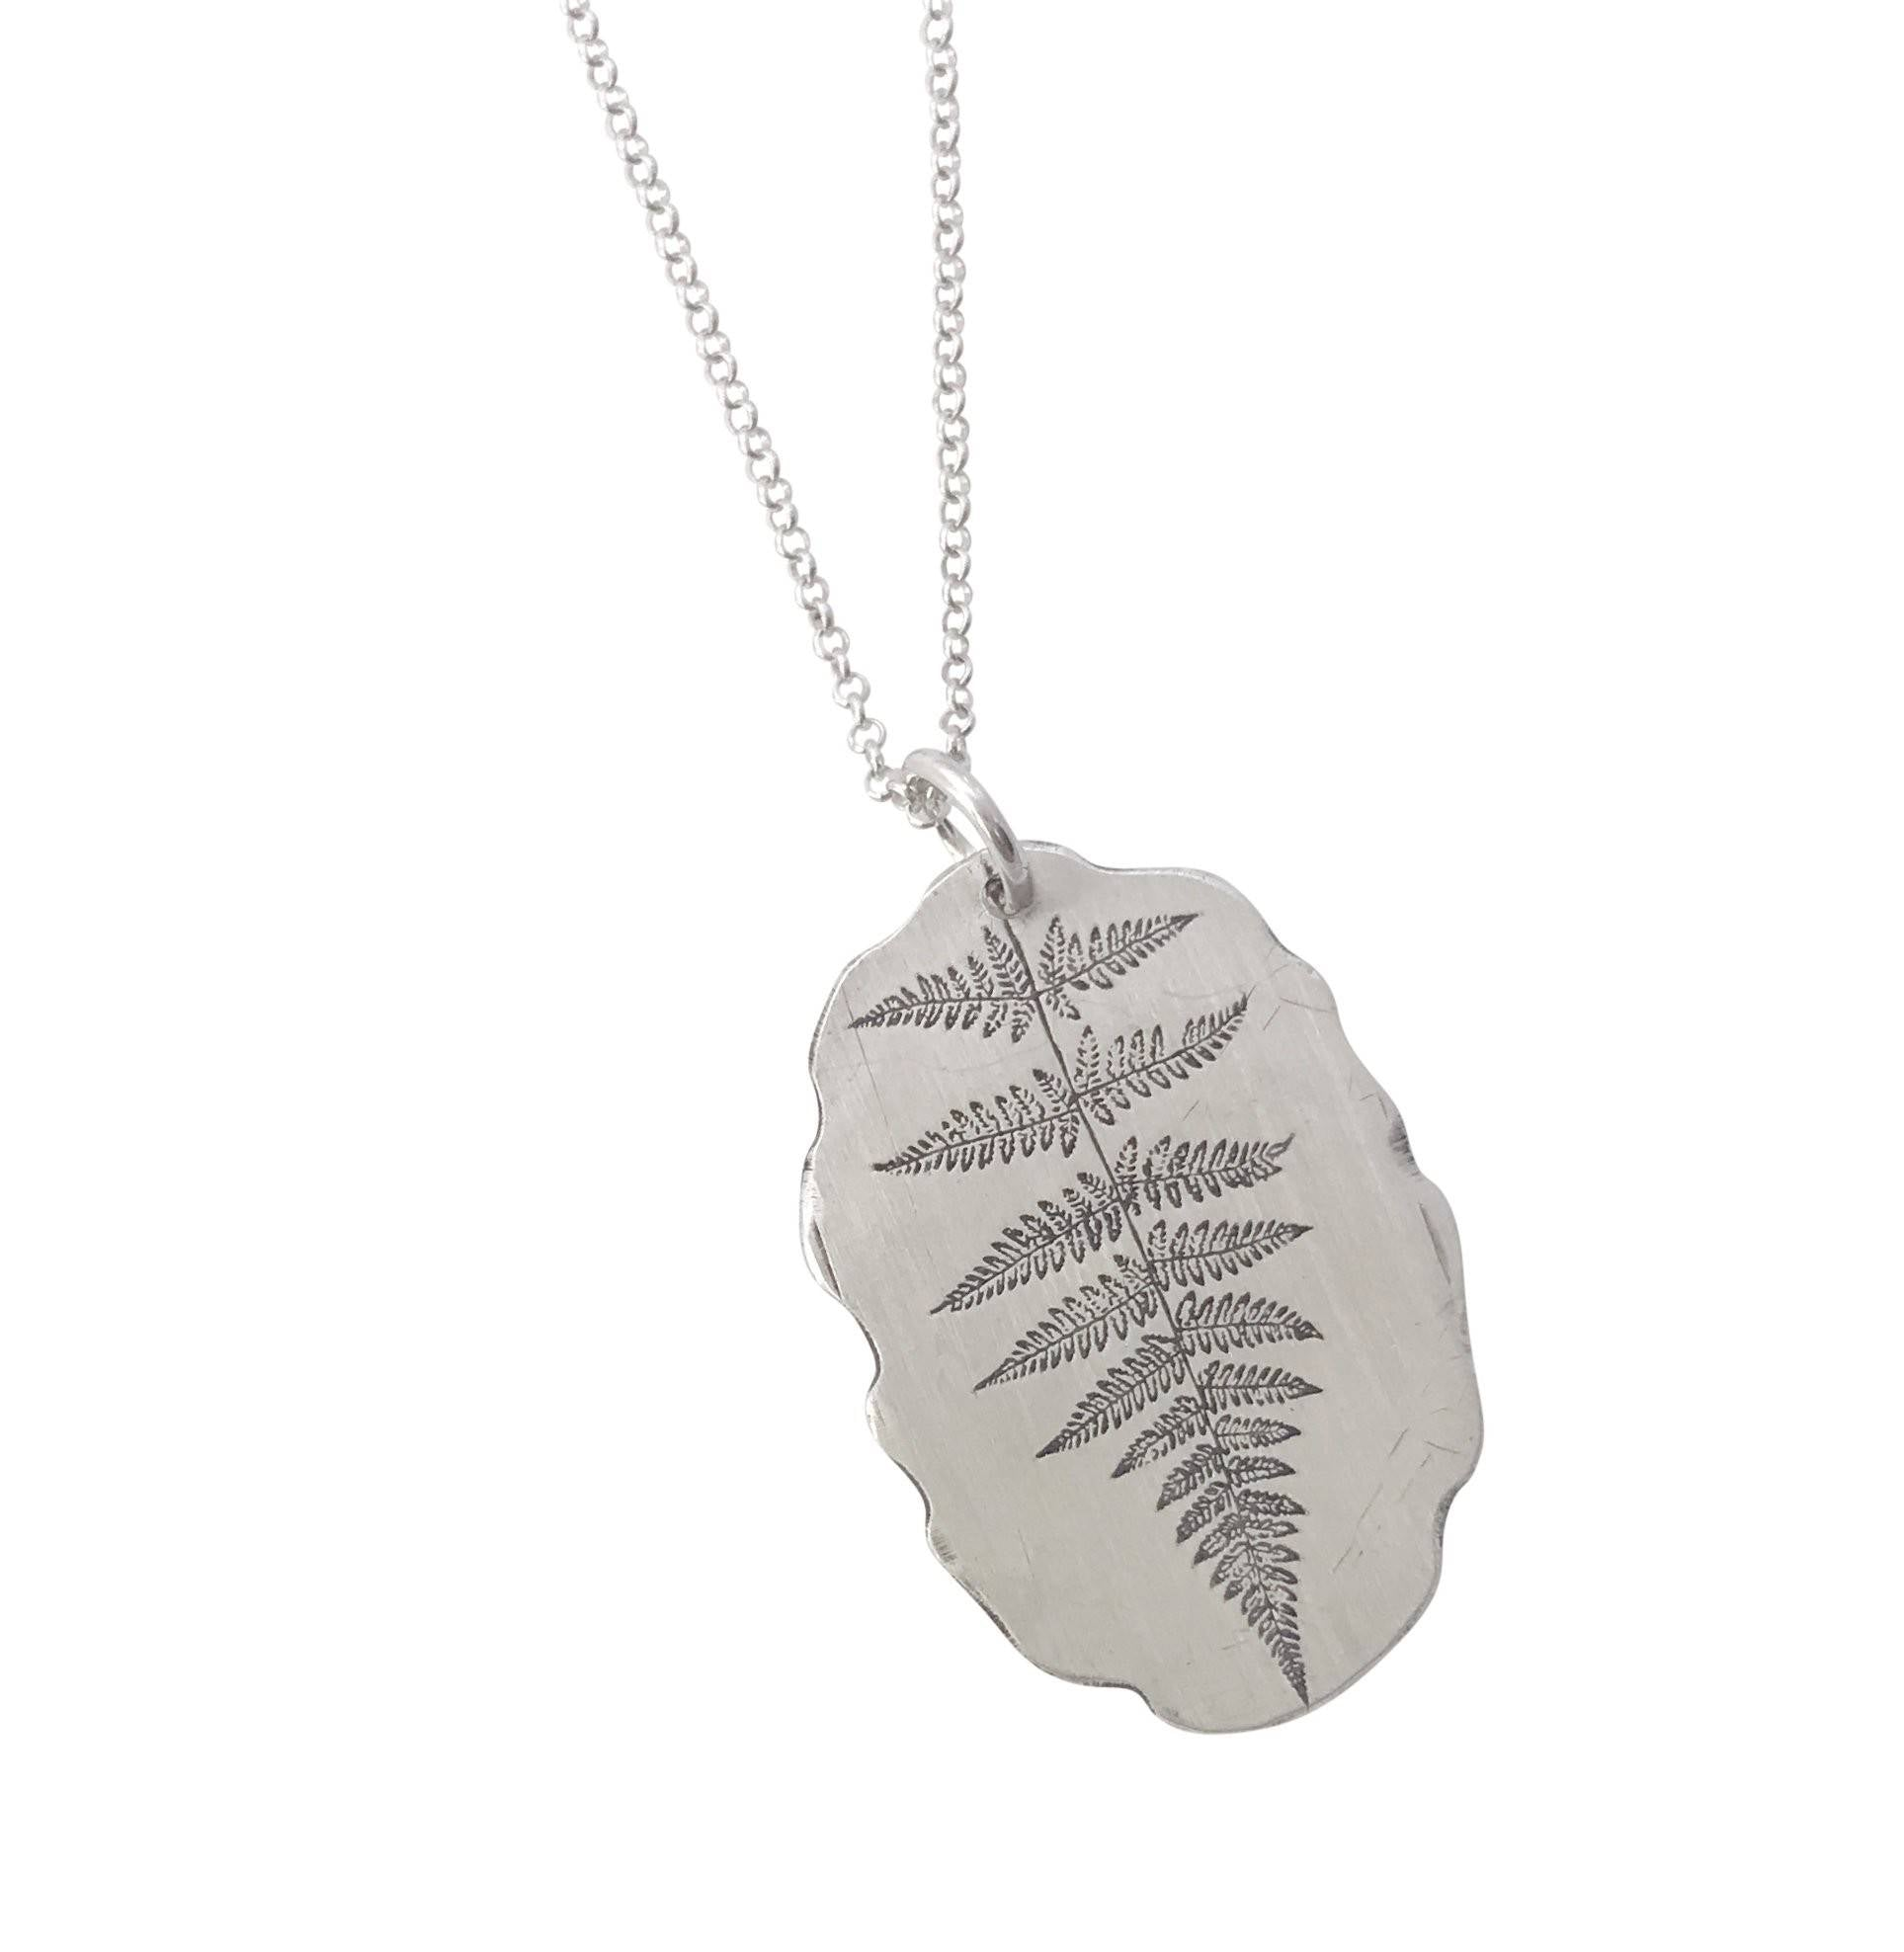 Fern Pendant with John Muir quote